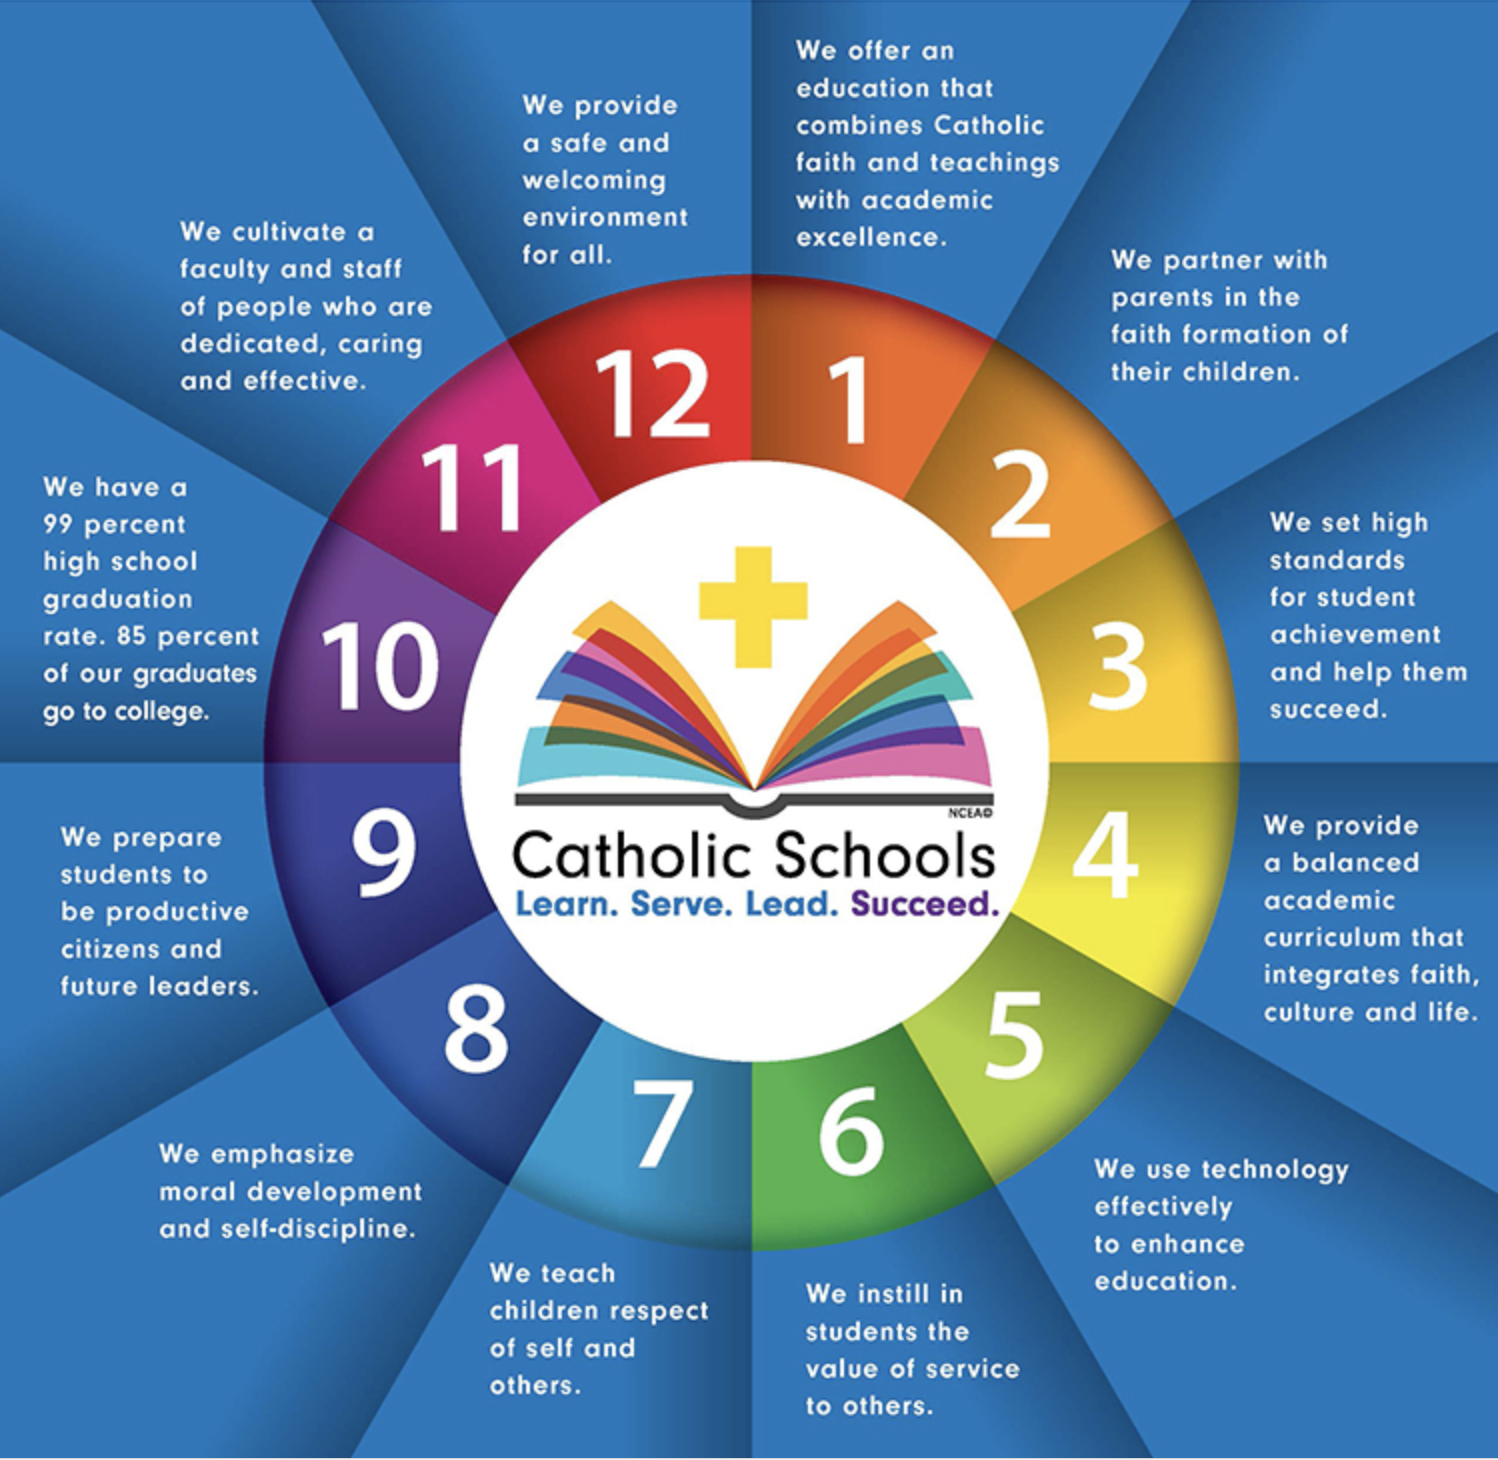 Benefits of Catholic Education